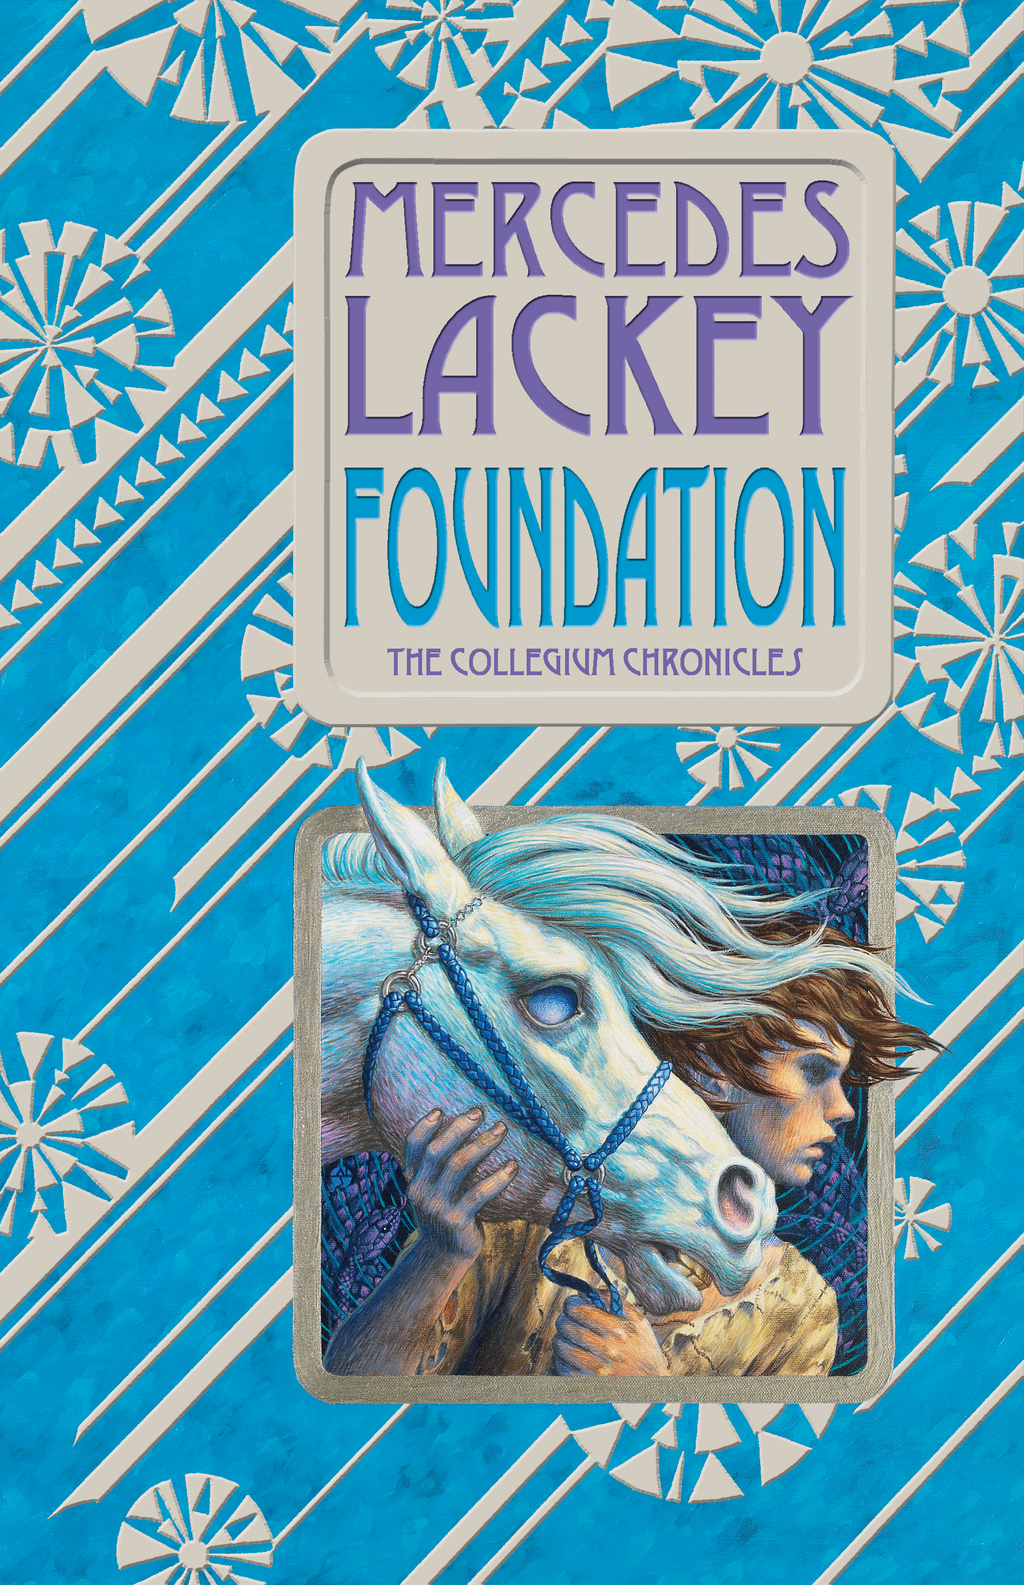 Foundation By: Mercedes Lackey